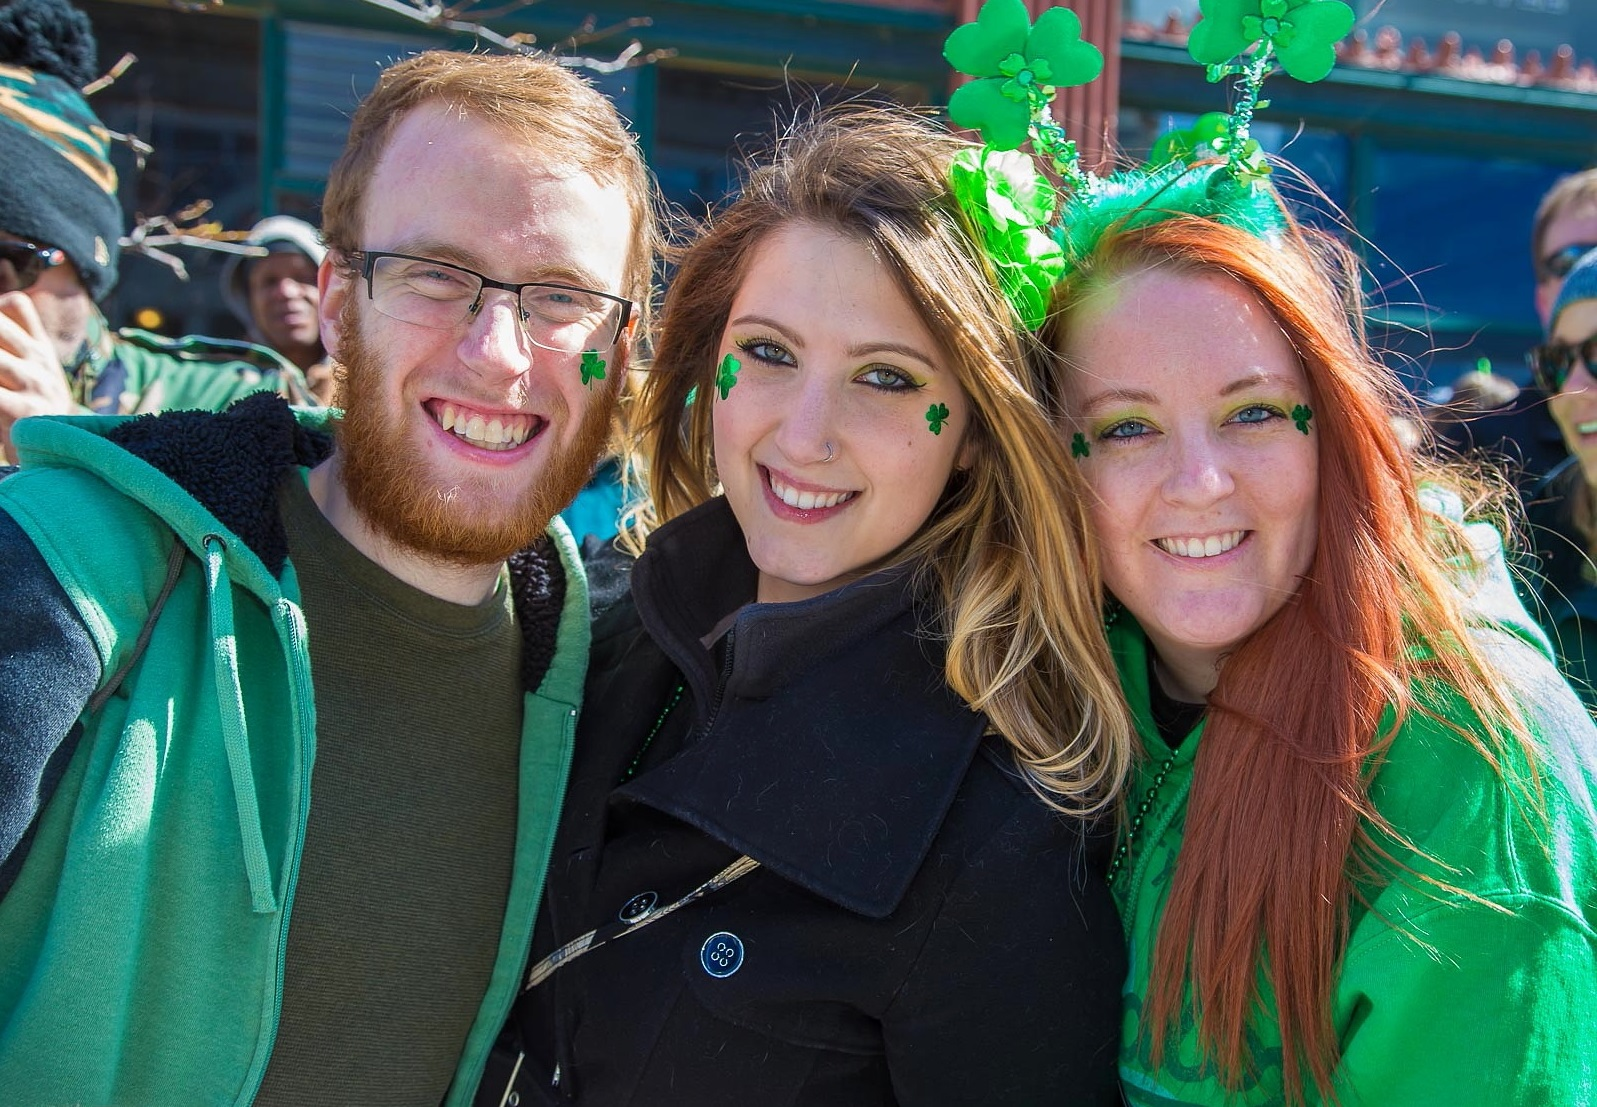 The St. Patrick's Day parade along Delaware Avenue leads off The 10 this week. (Don Nieman/Special to The News)